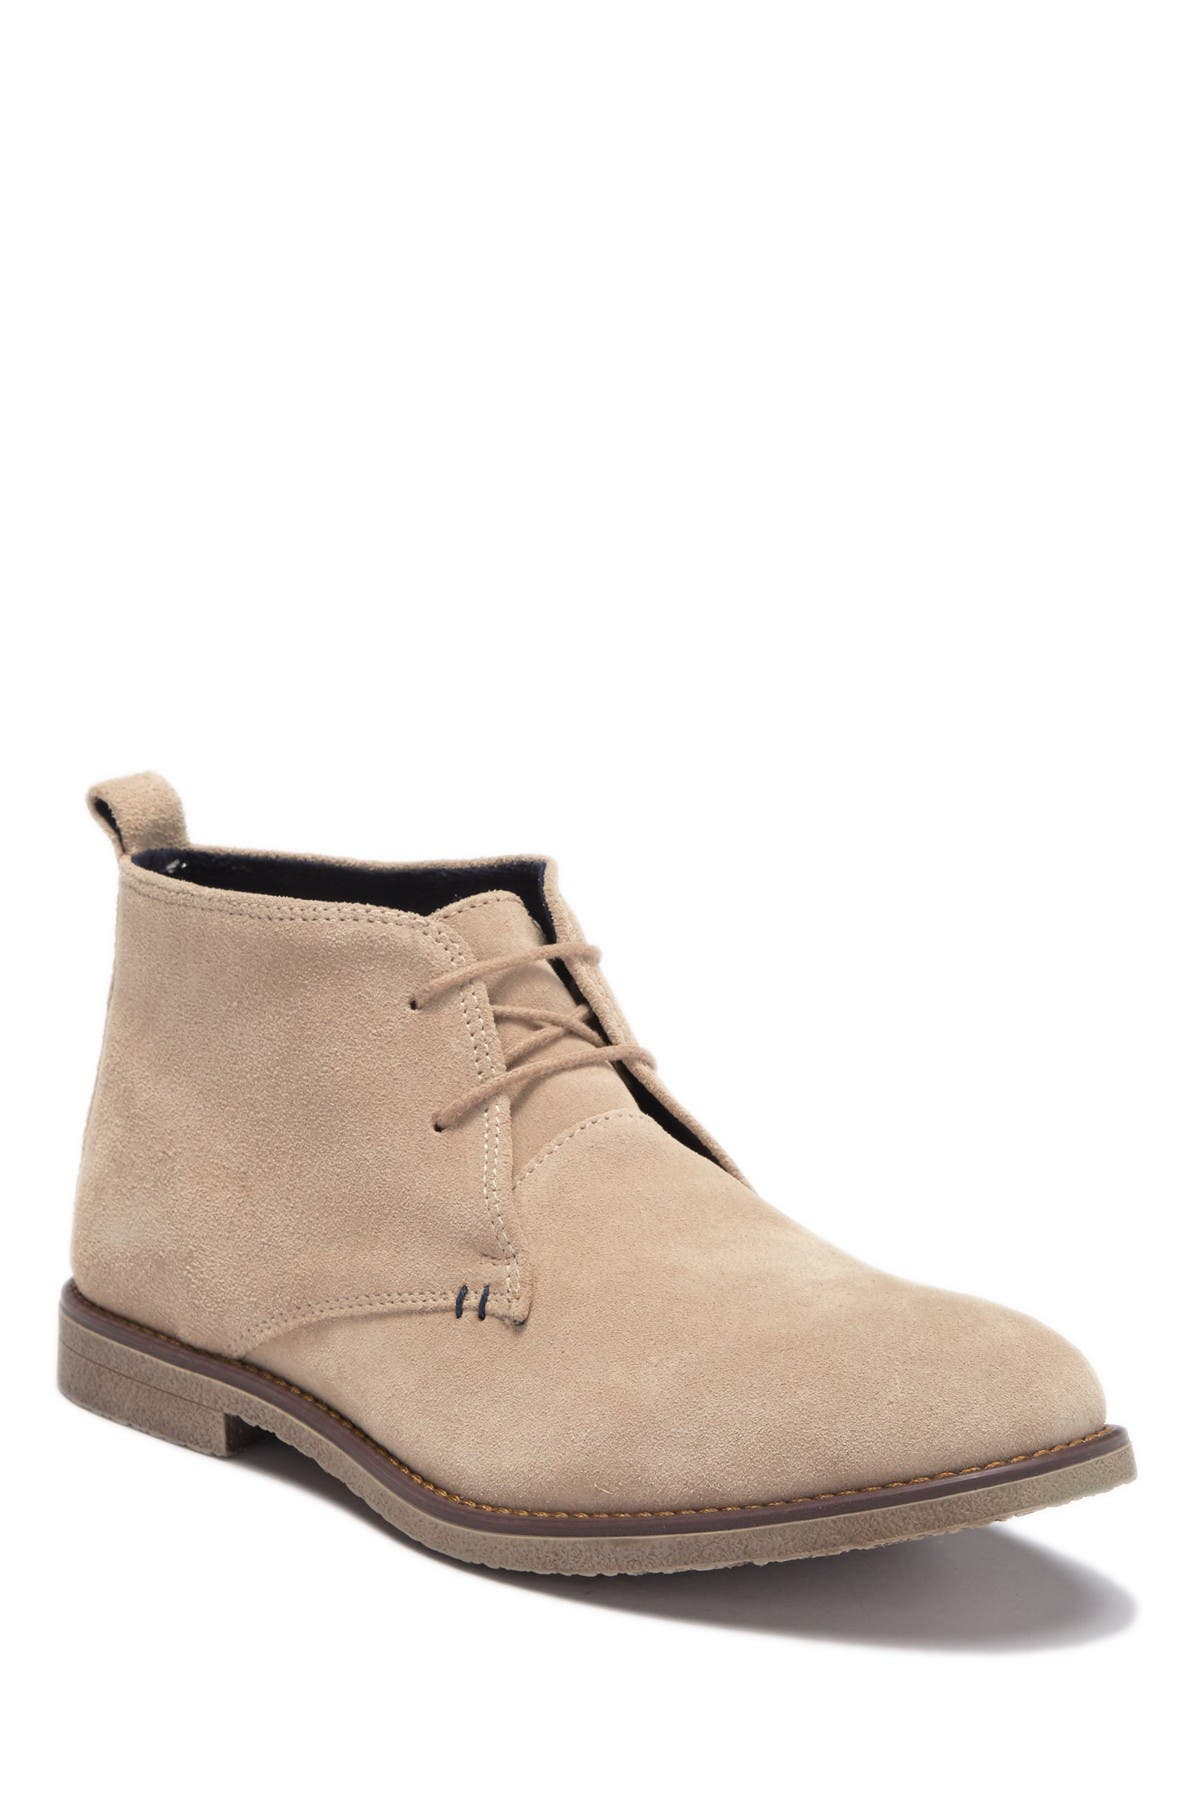 Joseph Abboud | Lucca Suede Chukka Boot